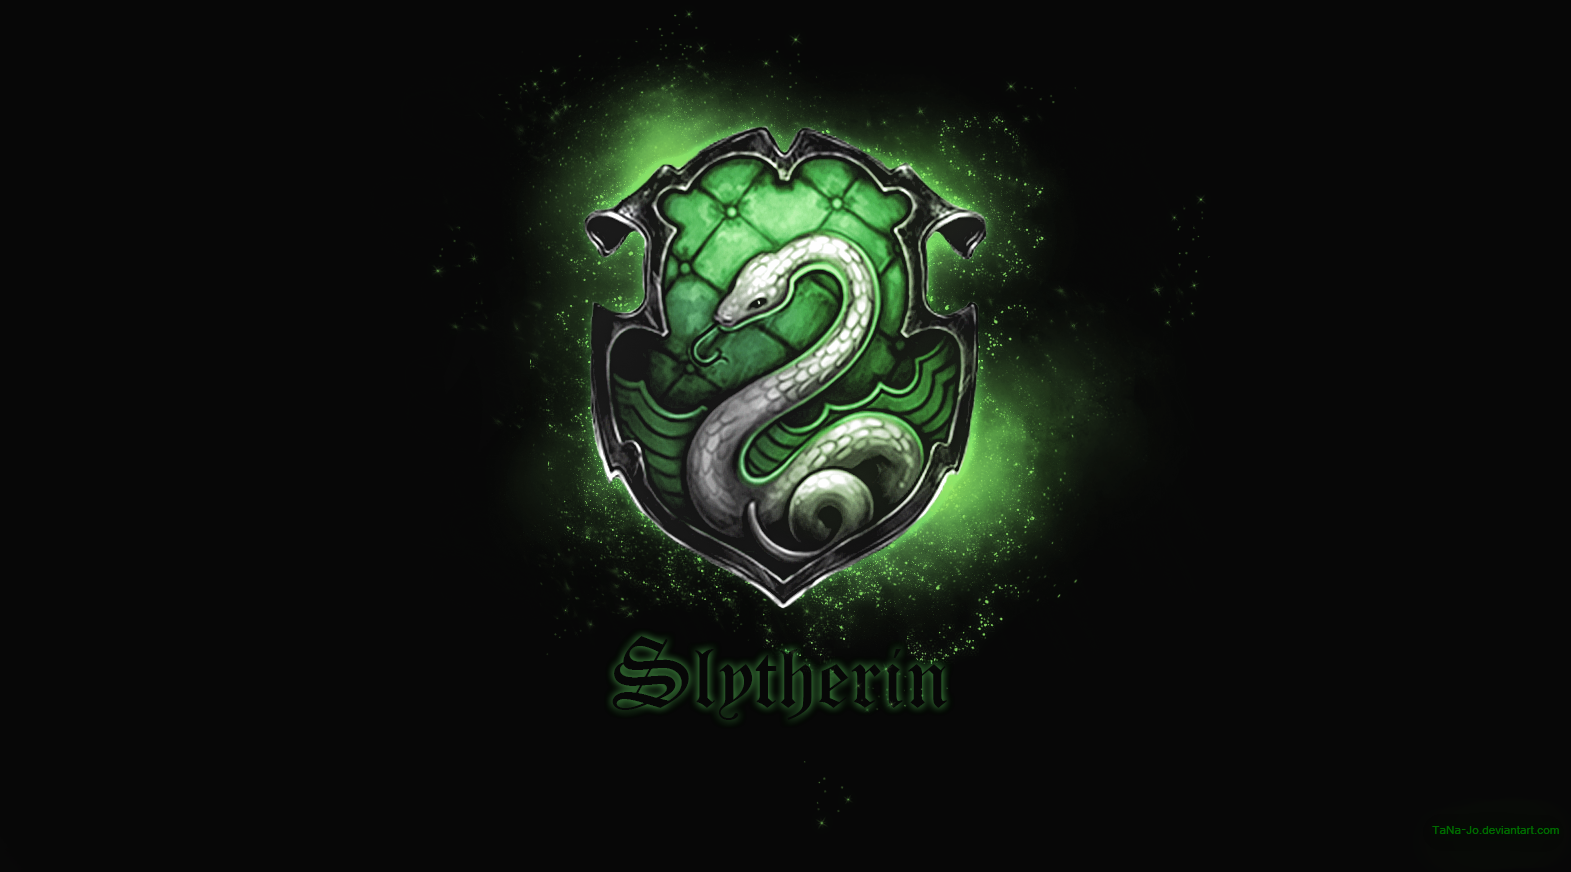 slytherin wallpaper hd iphone